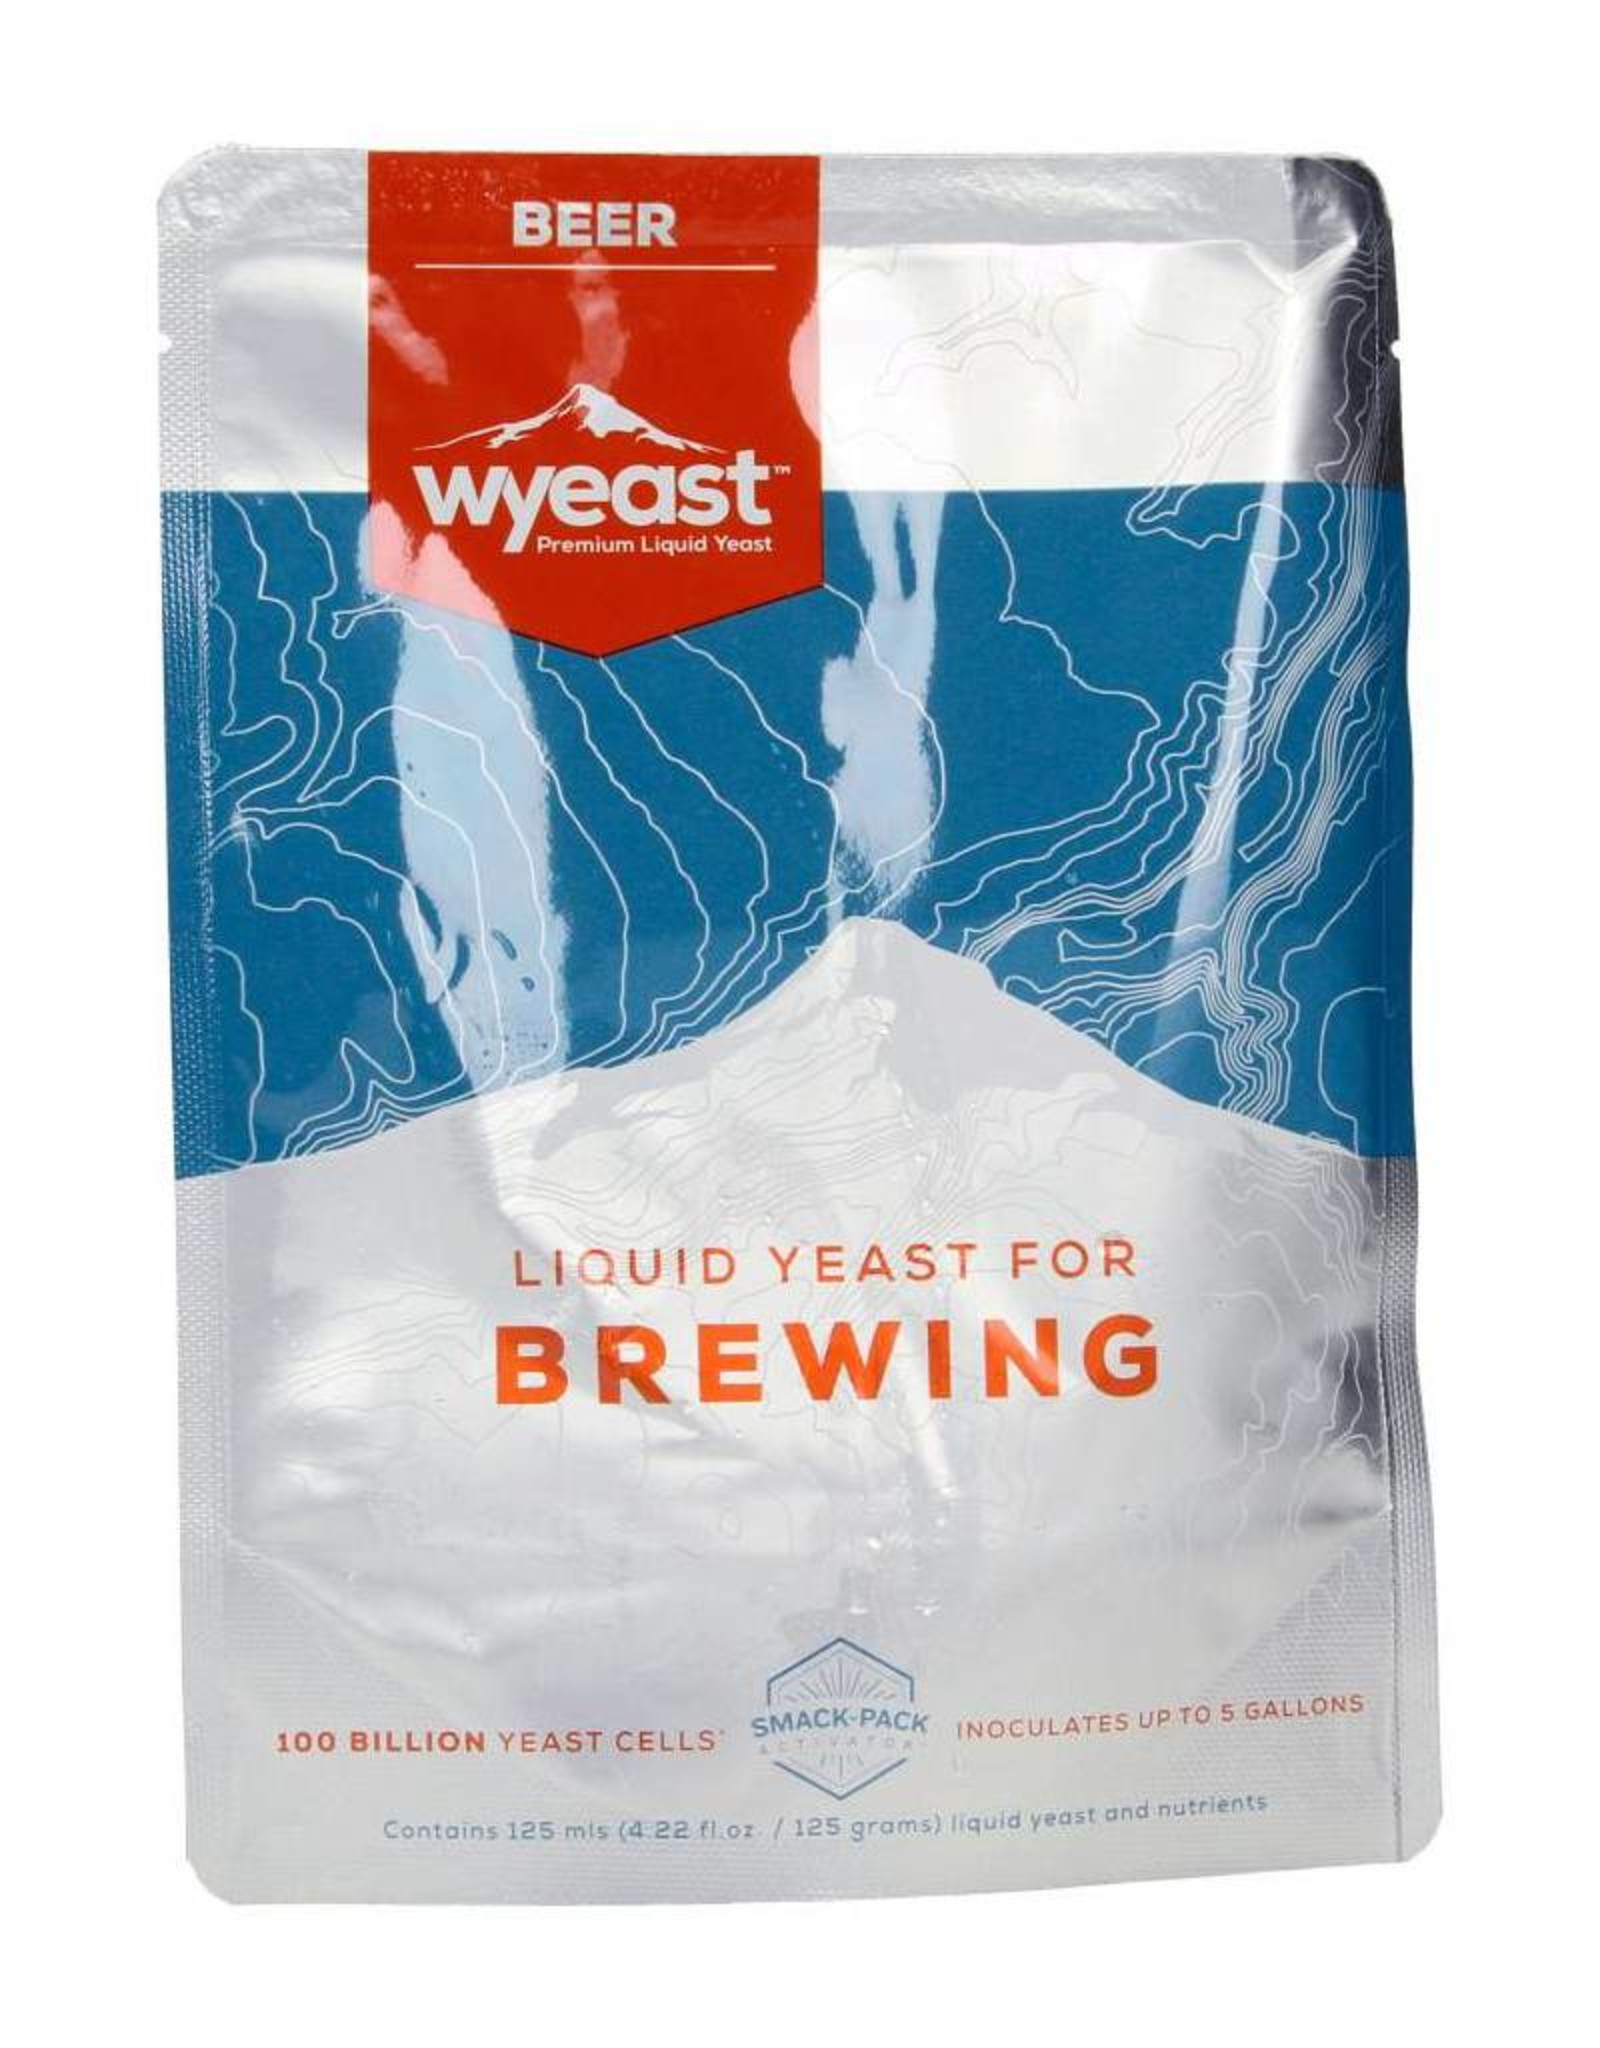 Wyeast Wine Nutrient 1.5oz